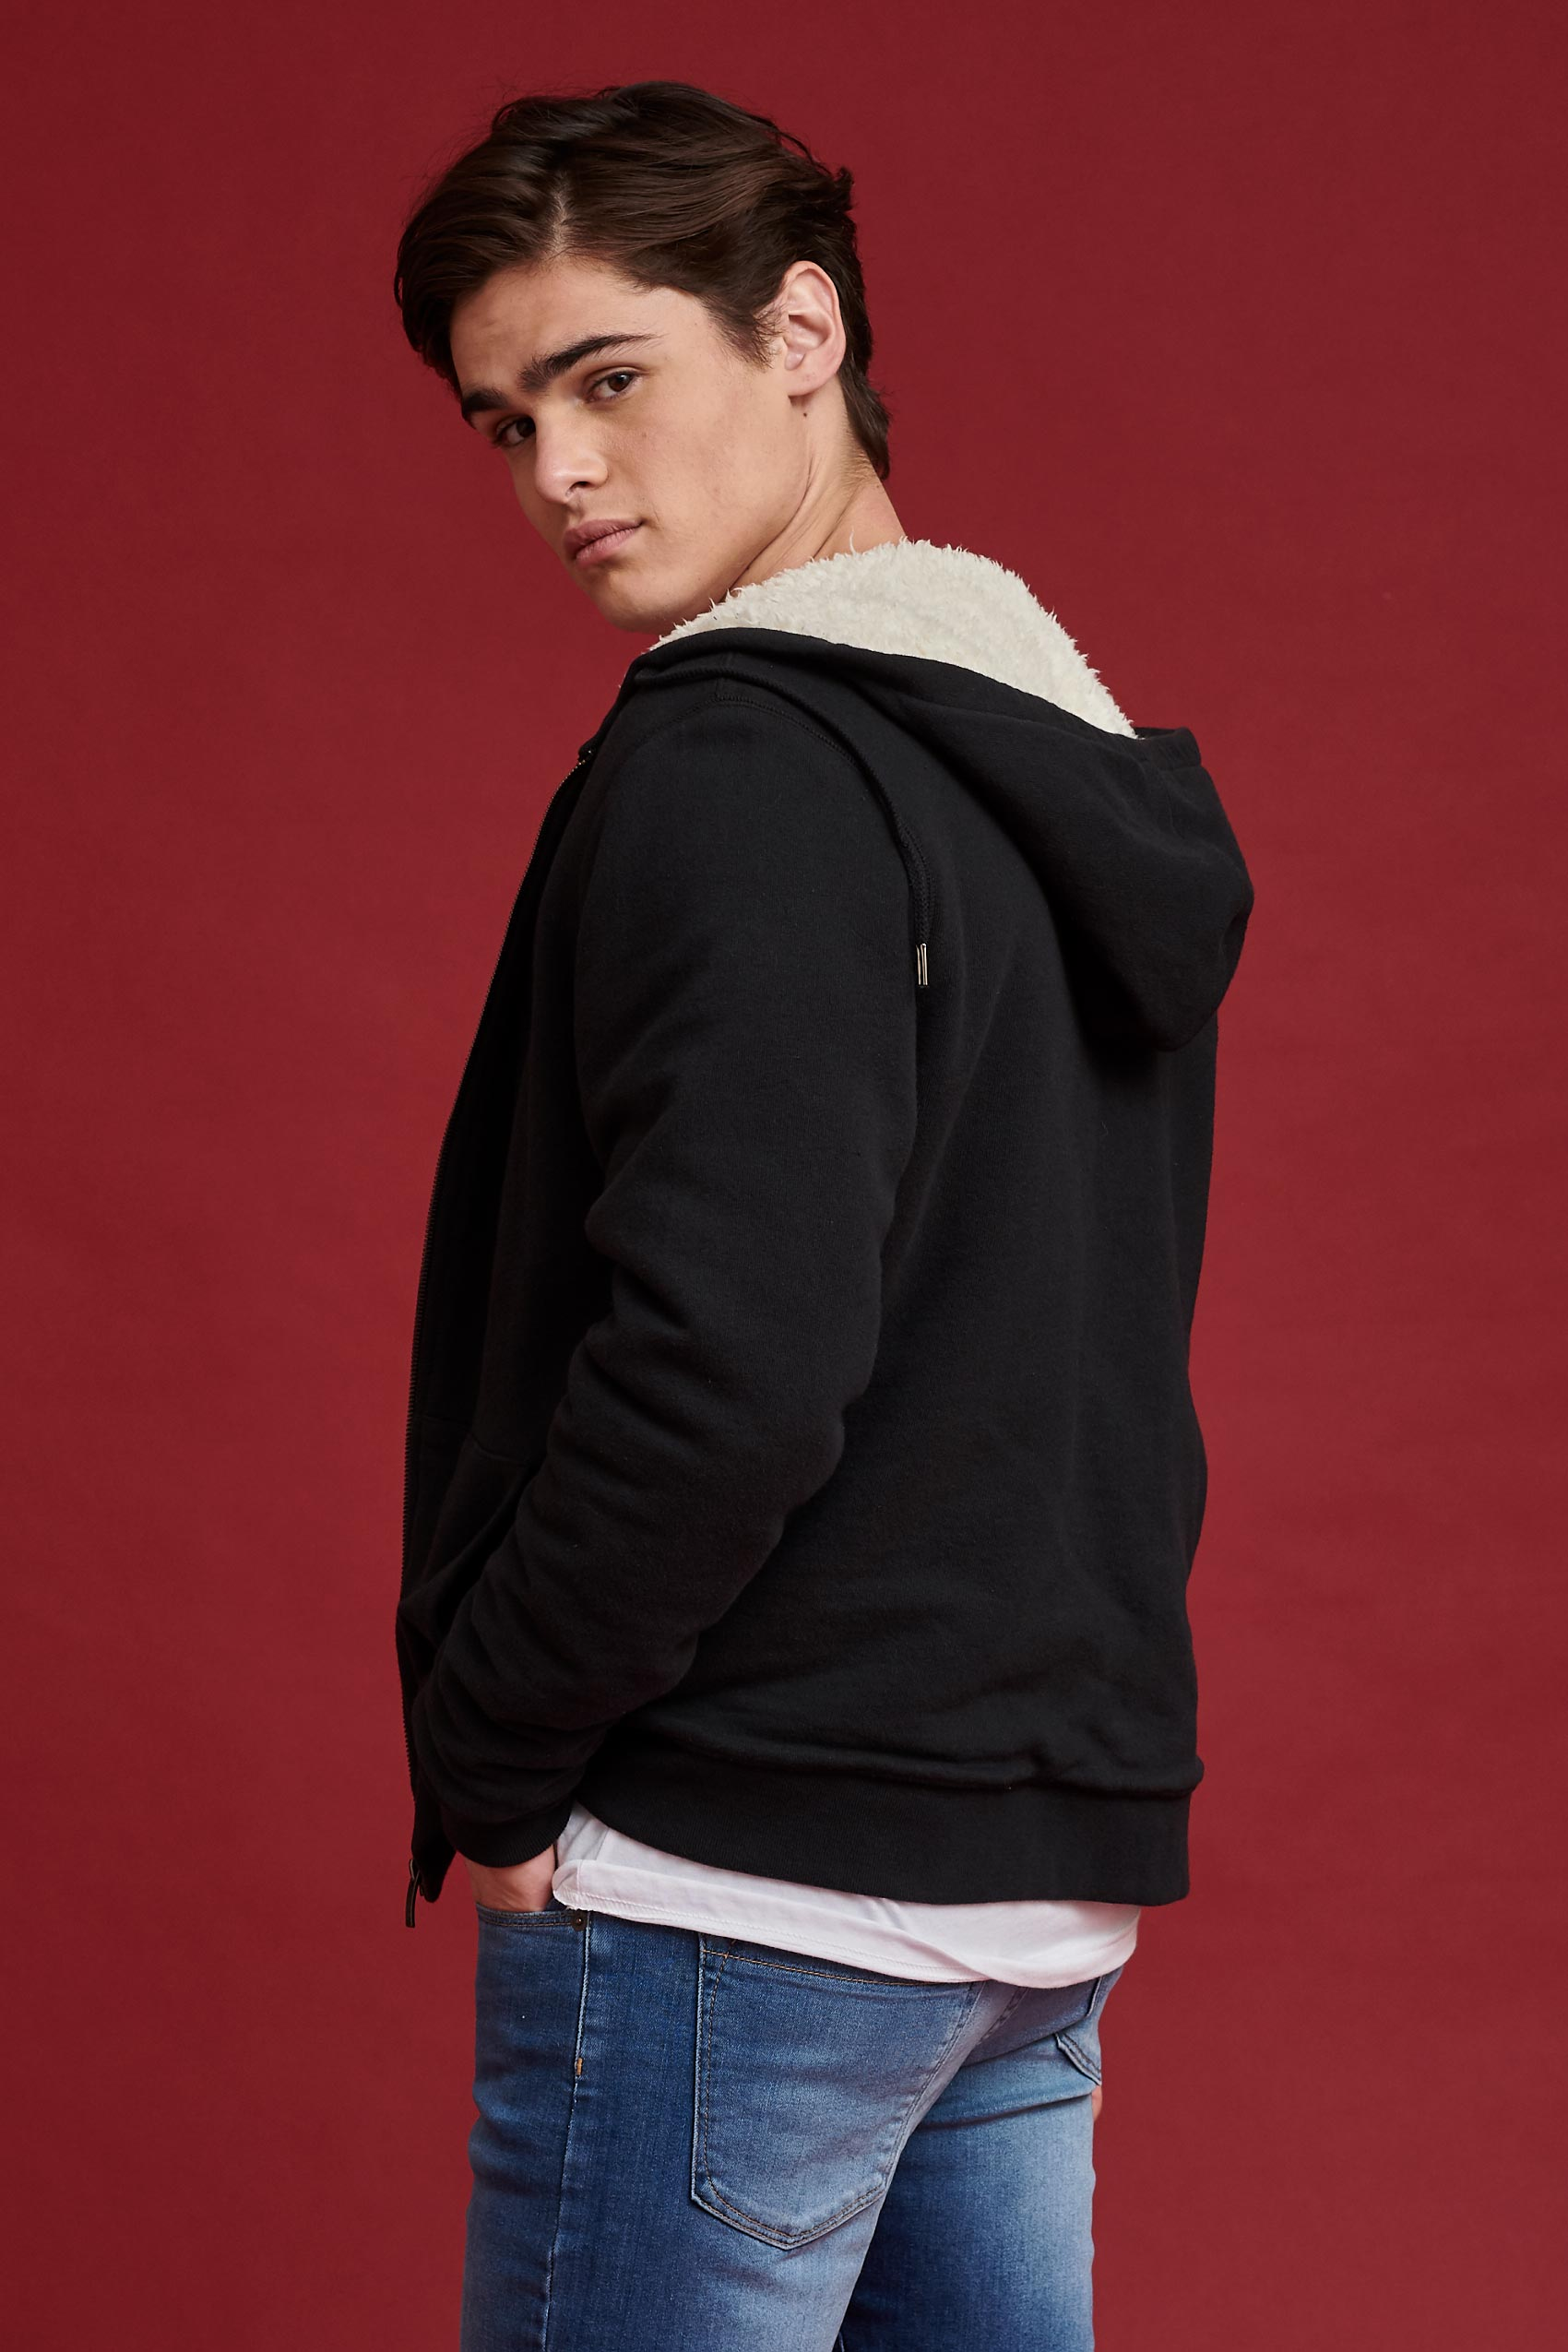 penguin_sherpa-lined-zip-hoodie_00-21-2020__picture-12931